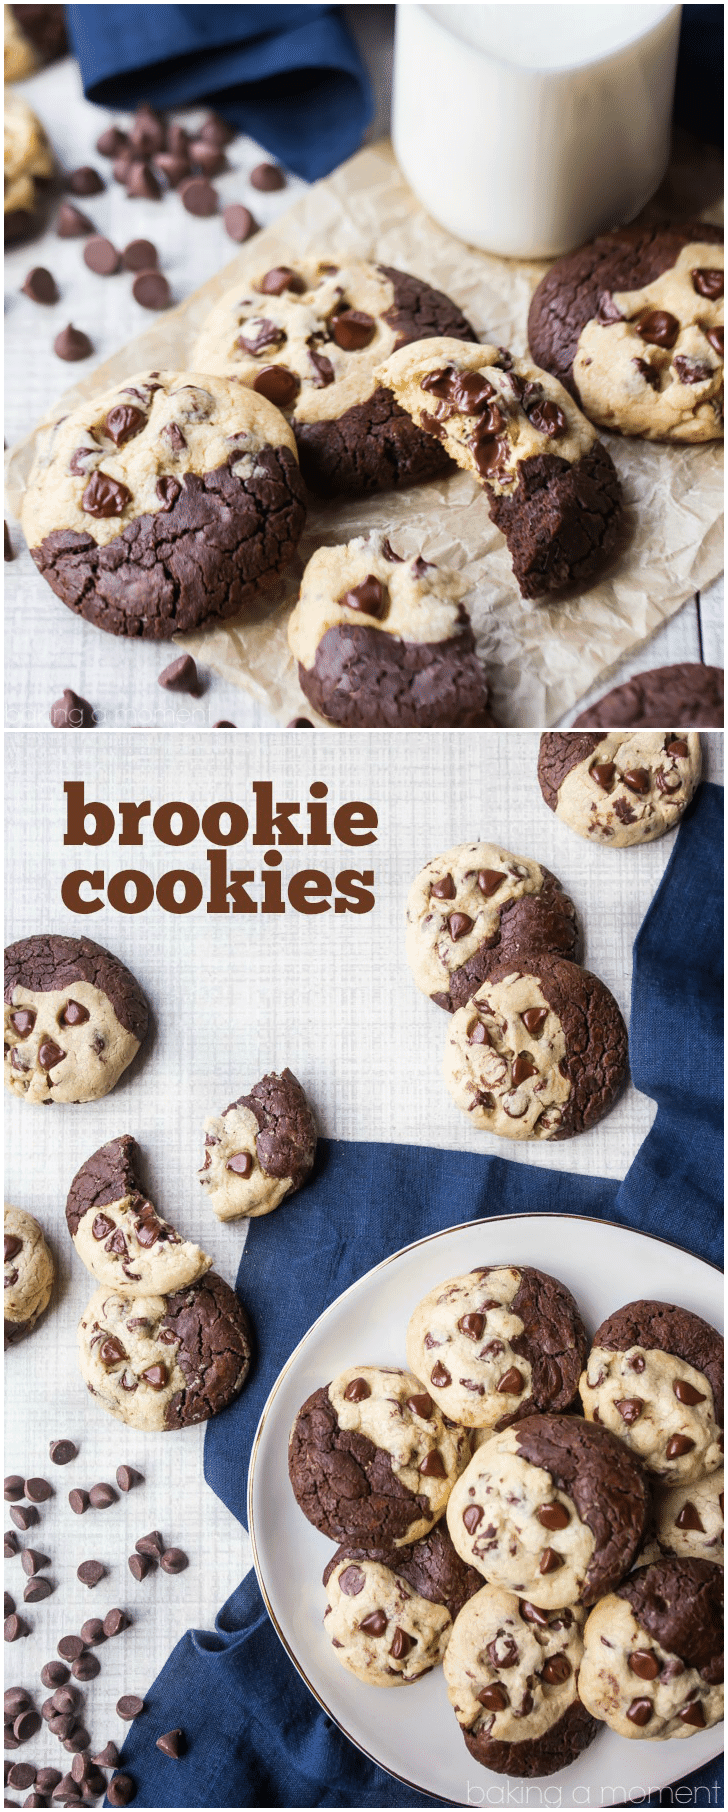 Brookie Cookies: the PERFECT solution for when you can't decide between a brownie and a chocolate chip cookie.  This recipe is the best of both worlds!  The brownie side is so dark chocolate-y, and the cookie side is so soft and gooey!  #brookies #brownies #cookie #chocolatechipcookies #chocolate #desserts #recipe #fromscratch #homemade